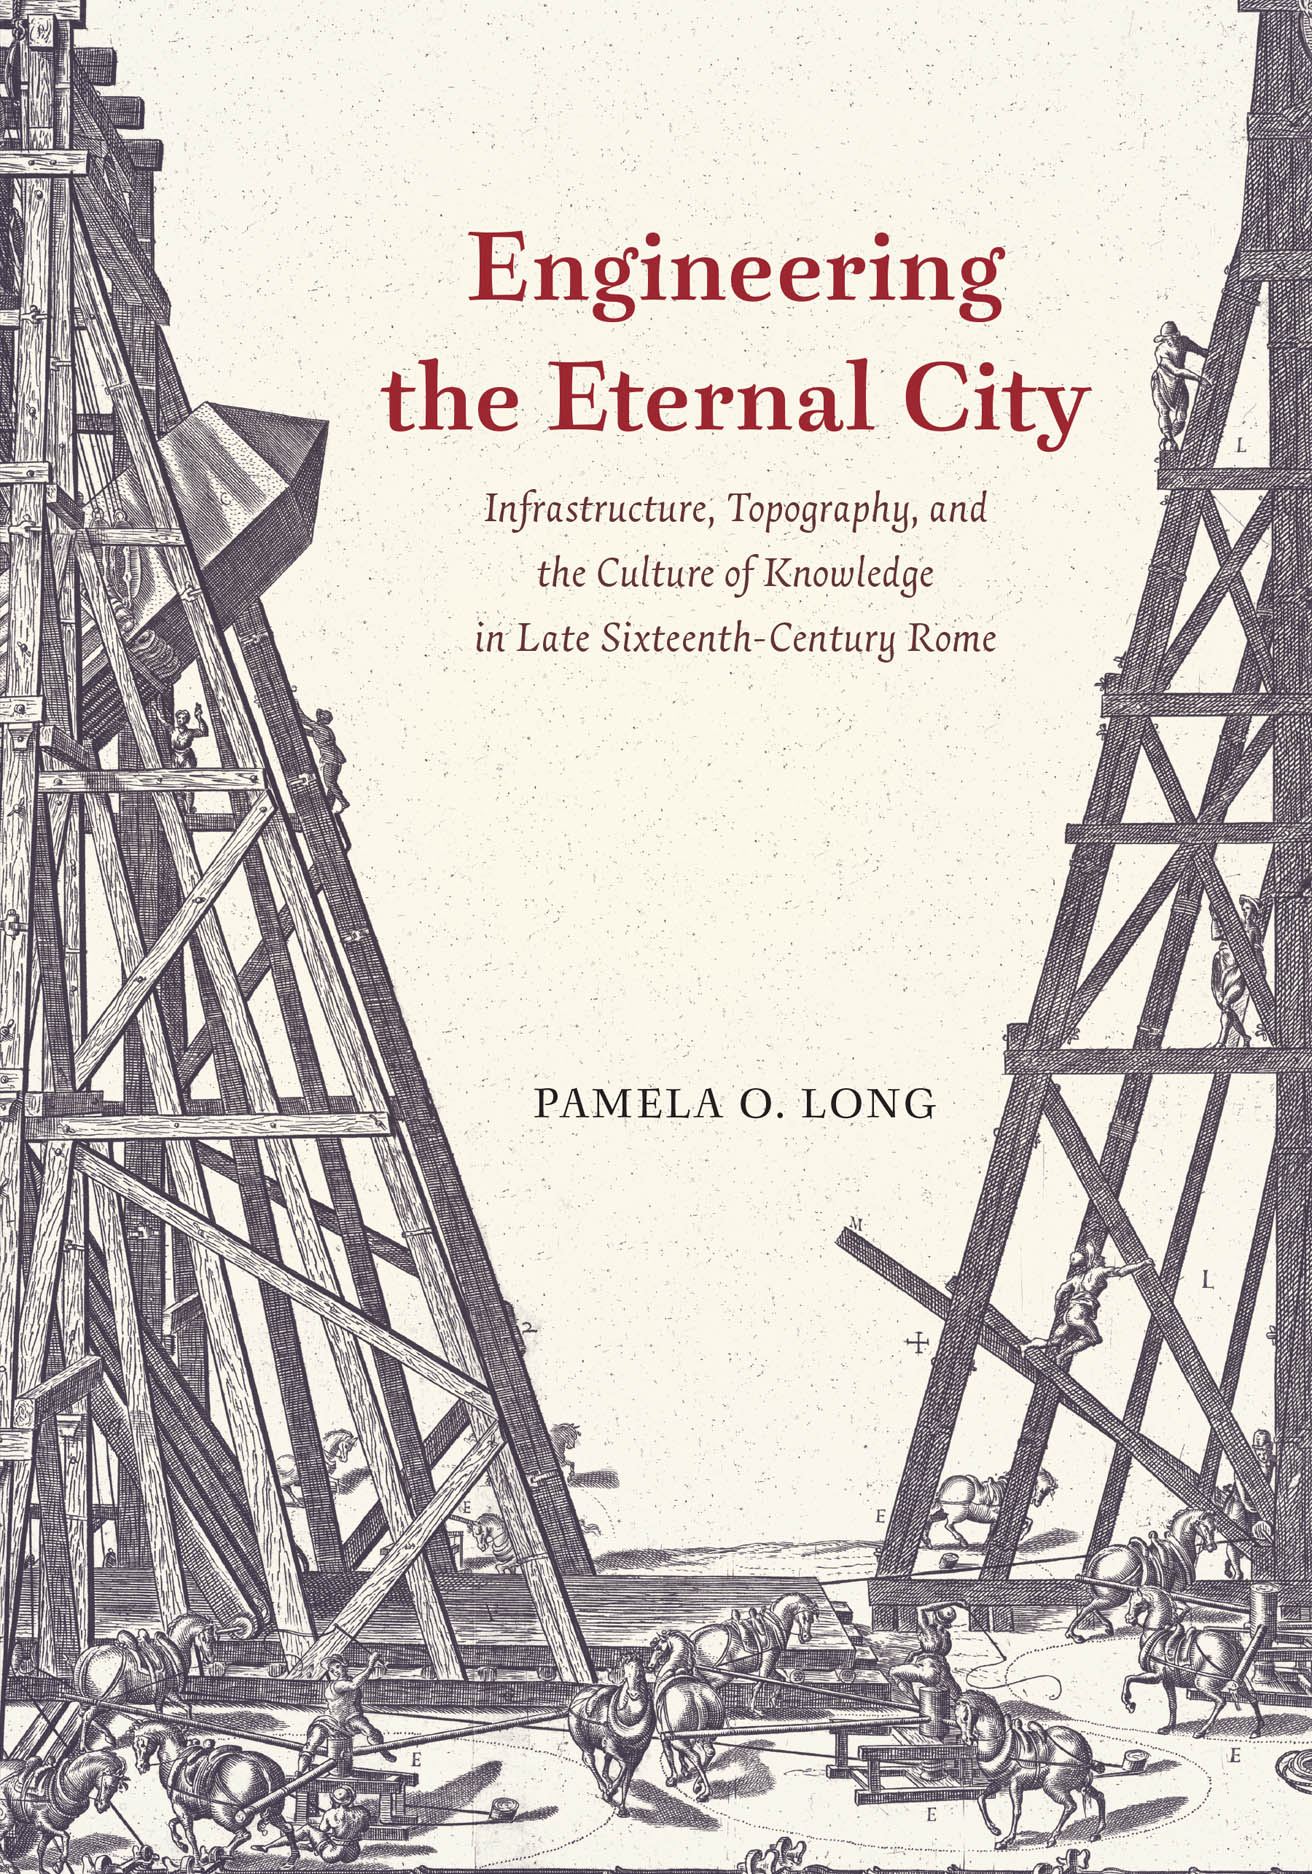 Engineering the Eternal City: Infrastructure, Topography, and the Culture of Knowledge in Late Sixteenth-Century Rome